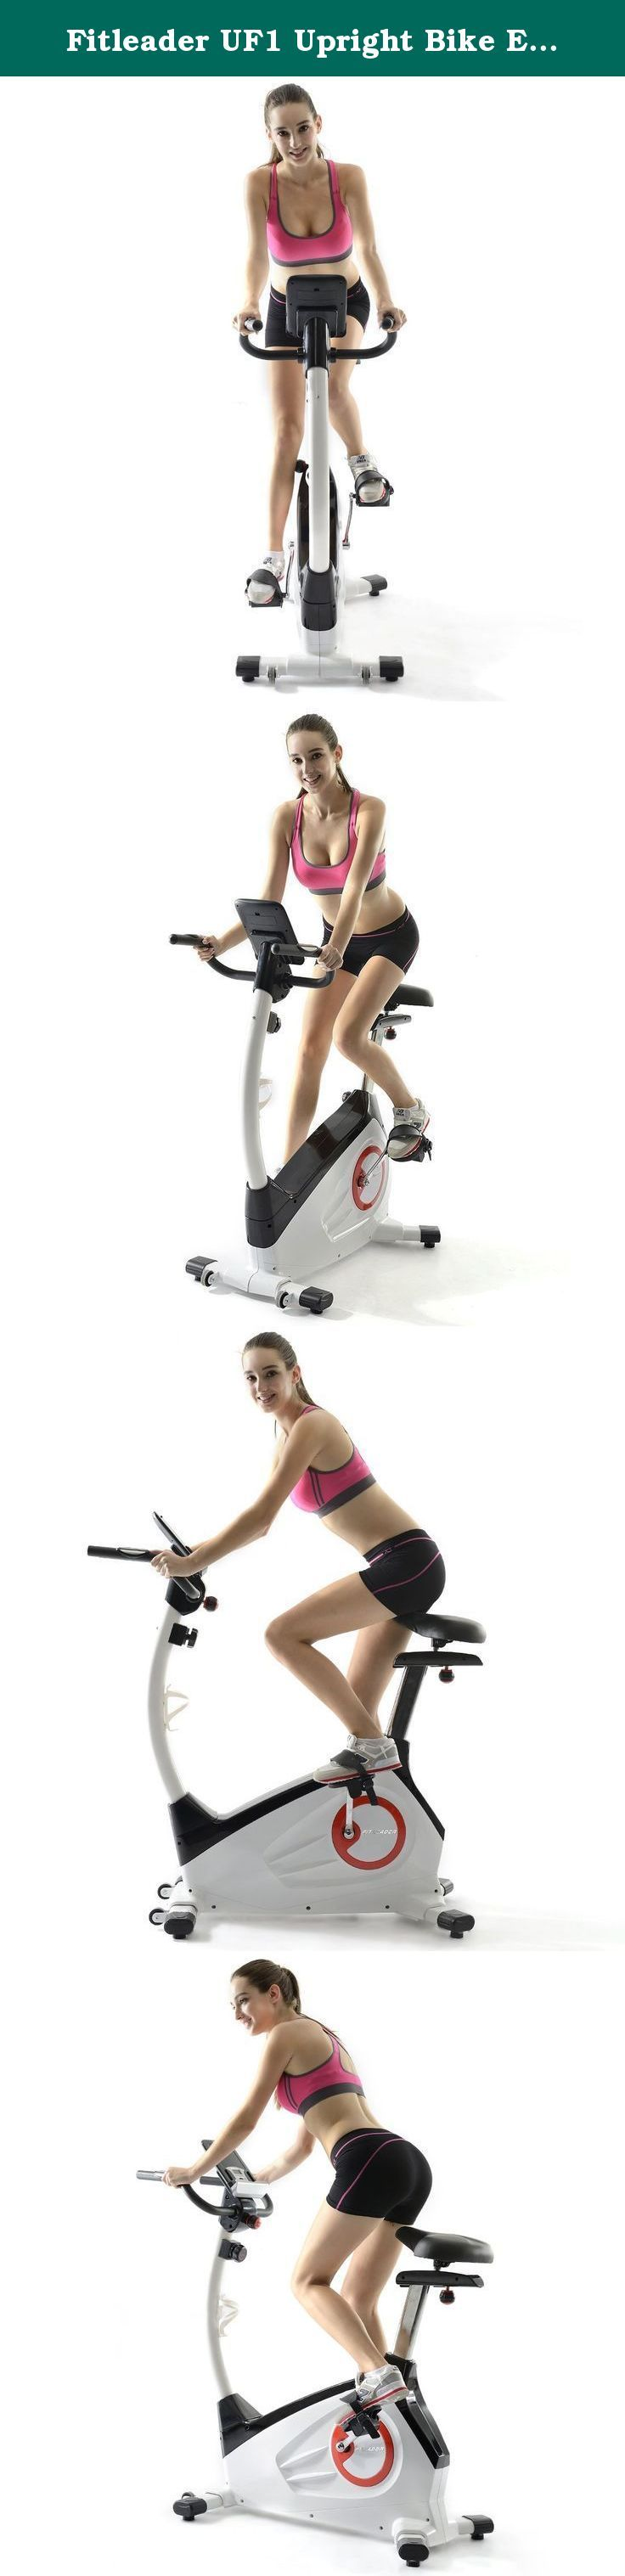 """Fitleader UF1 Upright Bike Exercise Indoor Cardio Bike Magnetic Resistance Stationary Cycling. """"Why Choose a Fitleader Upright Bike? Are you still trying to find the best stationary bike for your home gym? If so, the Fitleader UF1 upright bike is the high quality, competitively priced exercise bike you've been looking for! With its eight resistance levels and progress readouts for speed, RPM, time, distance, watts, calories and pulse, the UF1 is exactly what you need to achieve your…"""